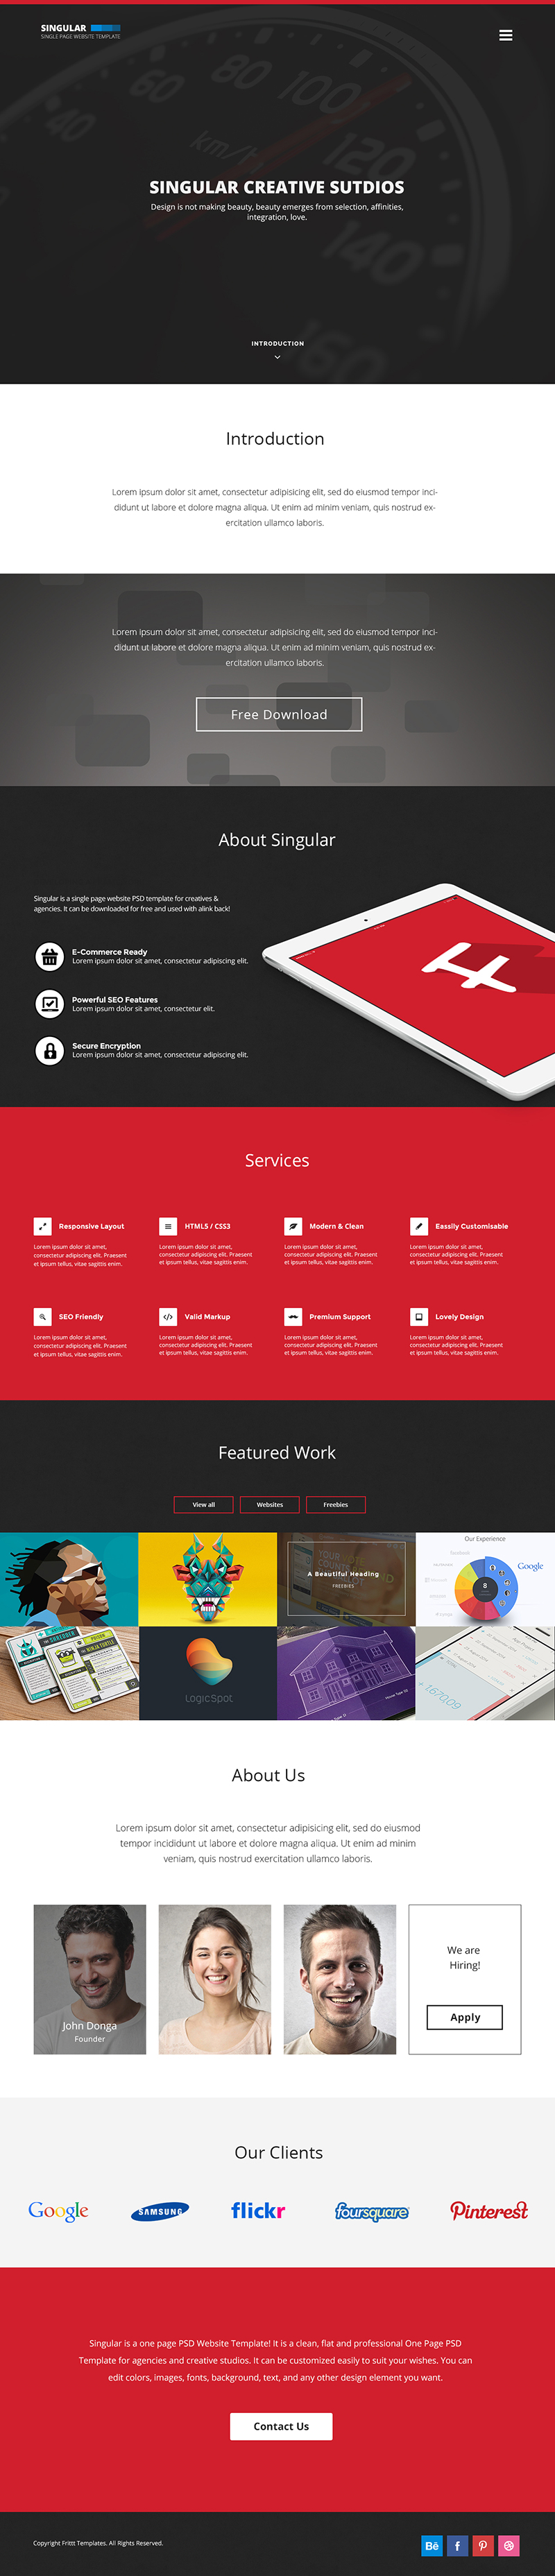 15 free psd website templates 2015